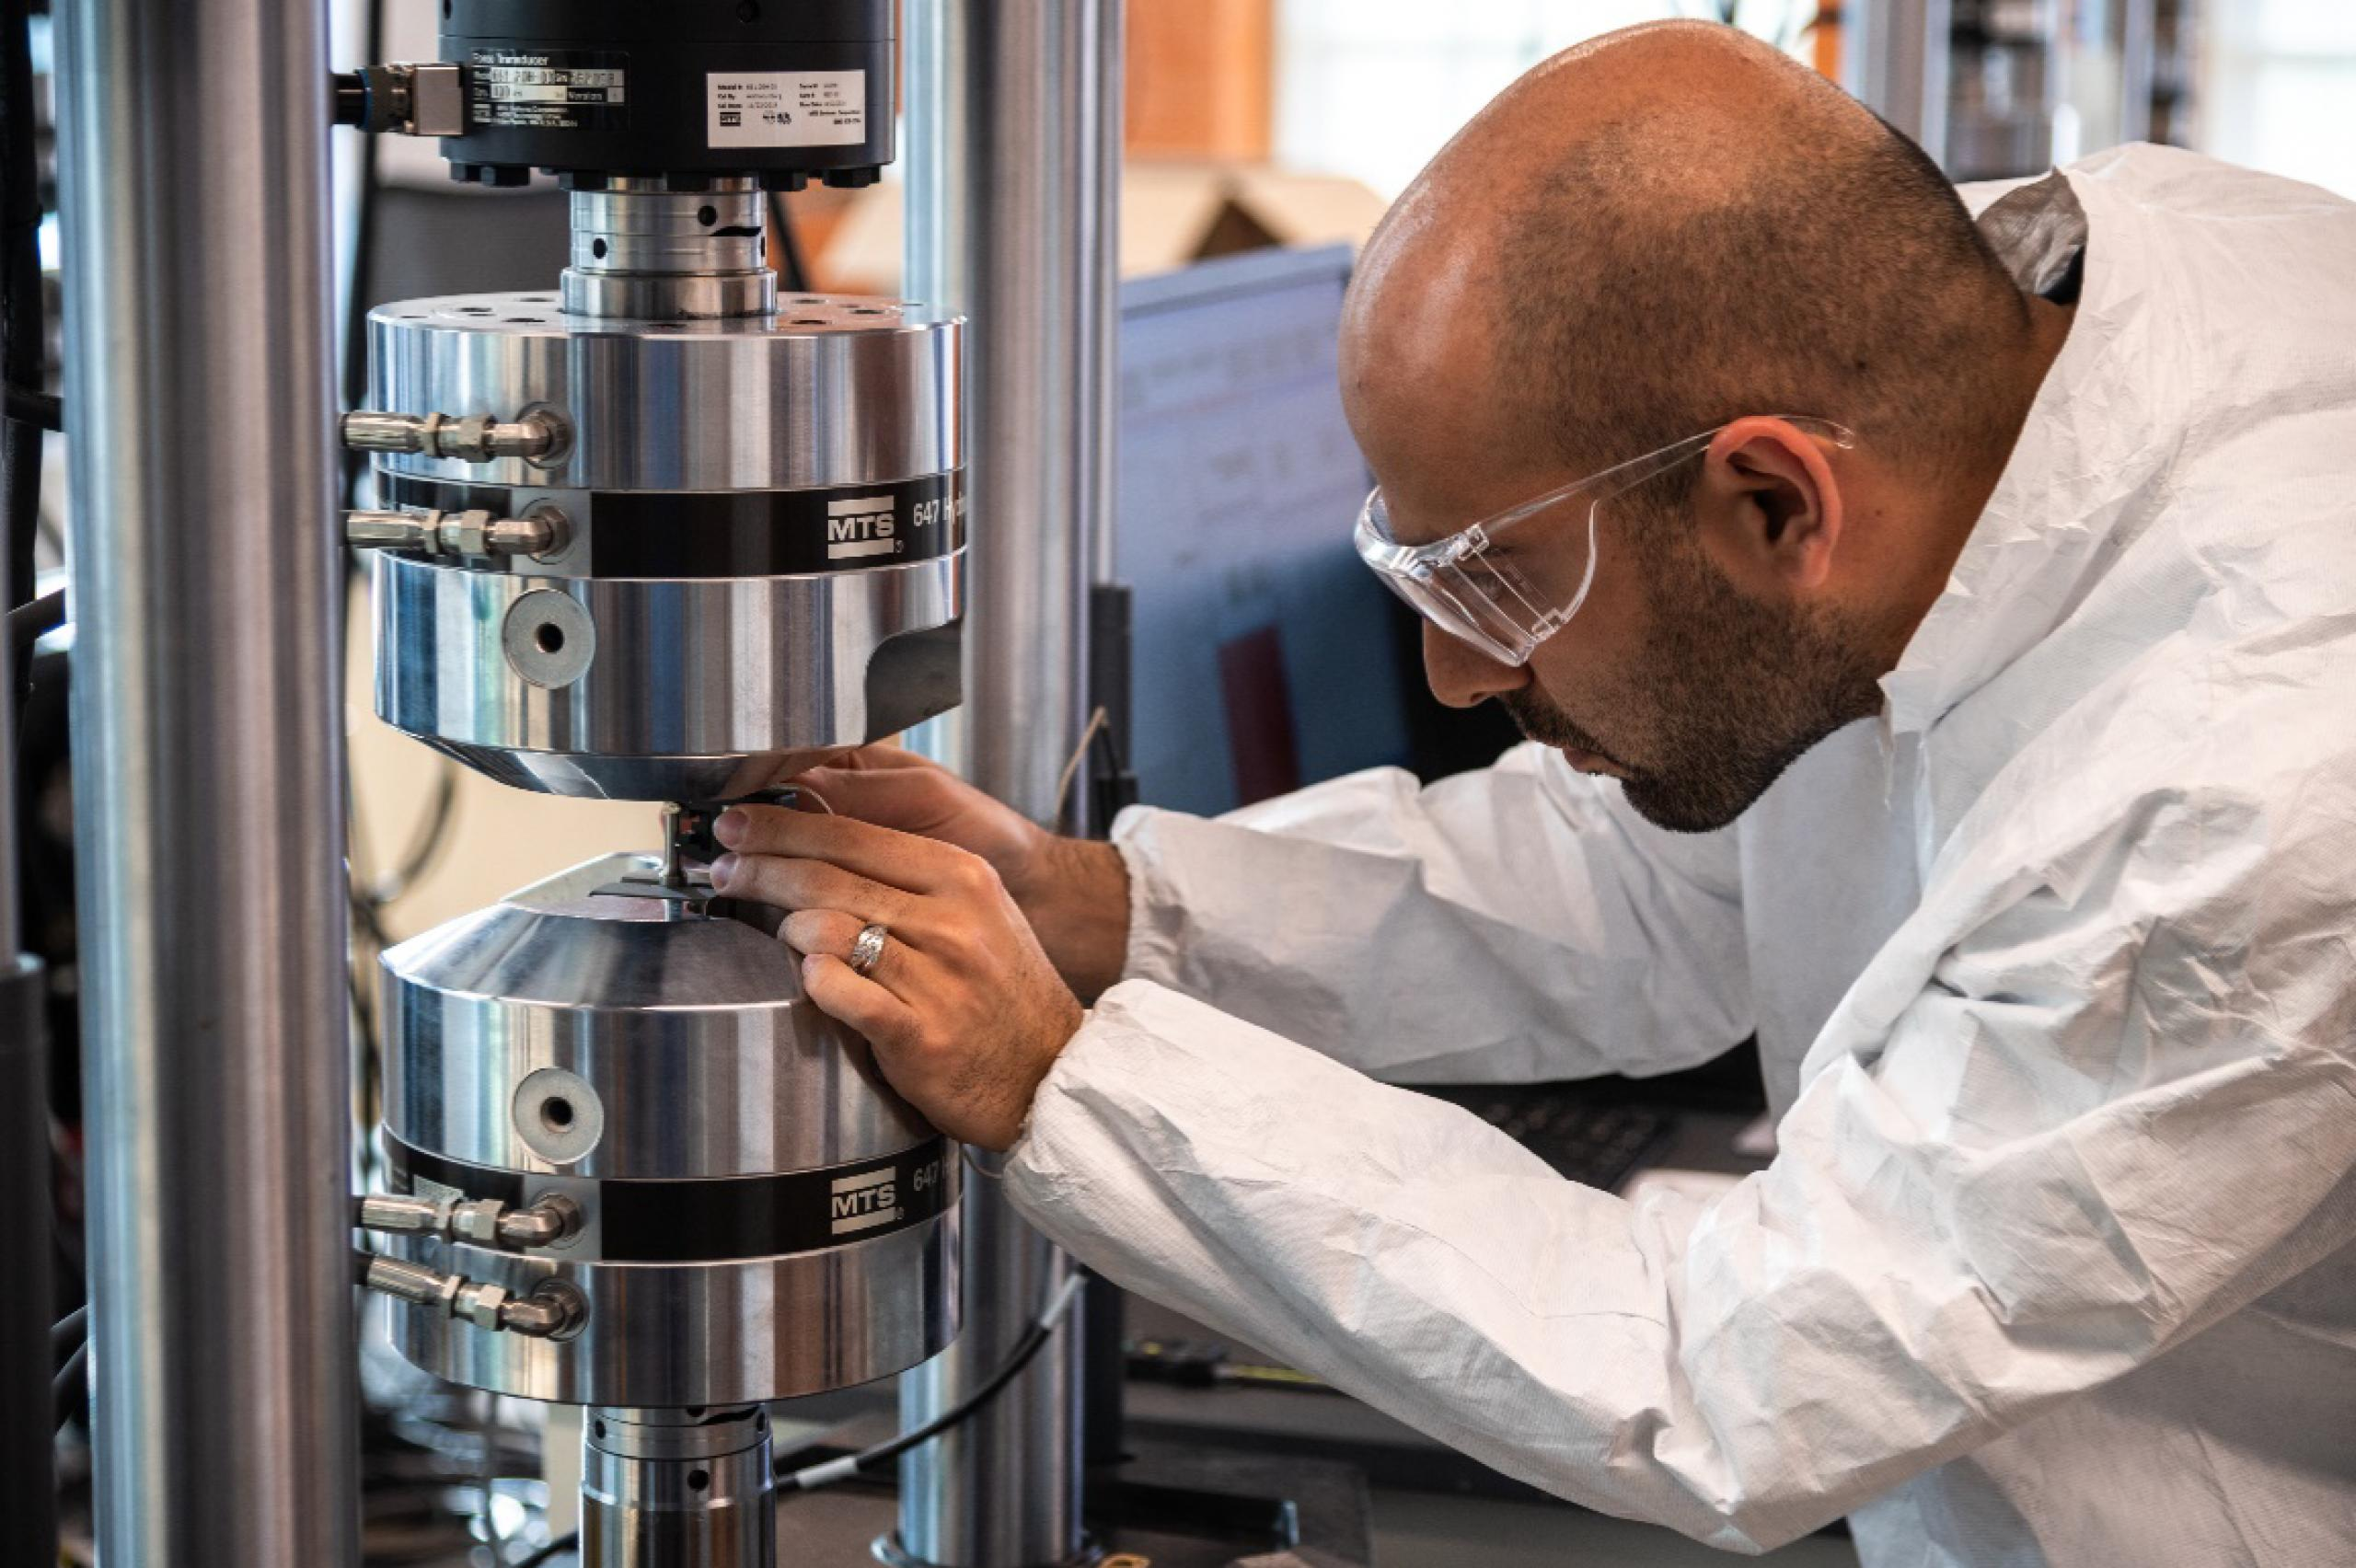 Man attired in lab clothing and classes working with his hands on a metal cylinder.